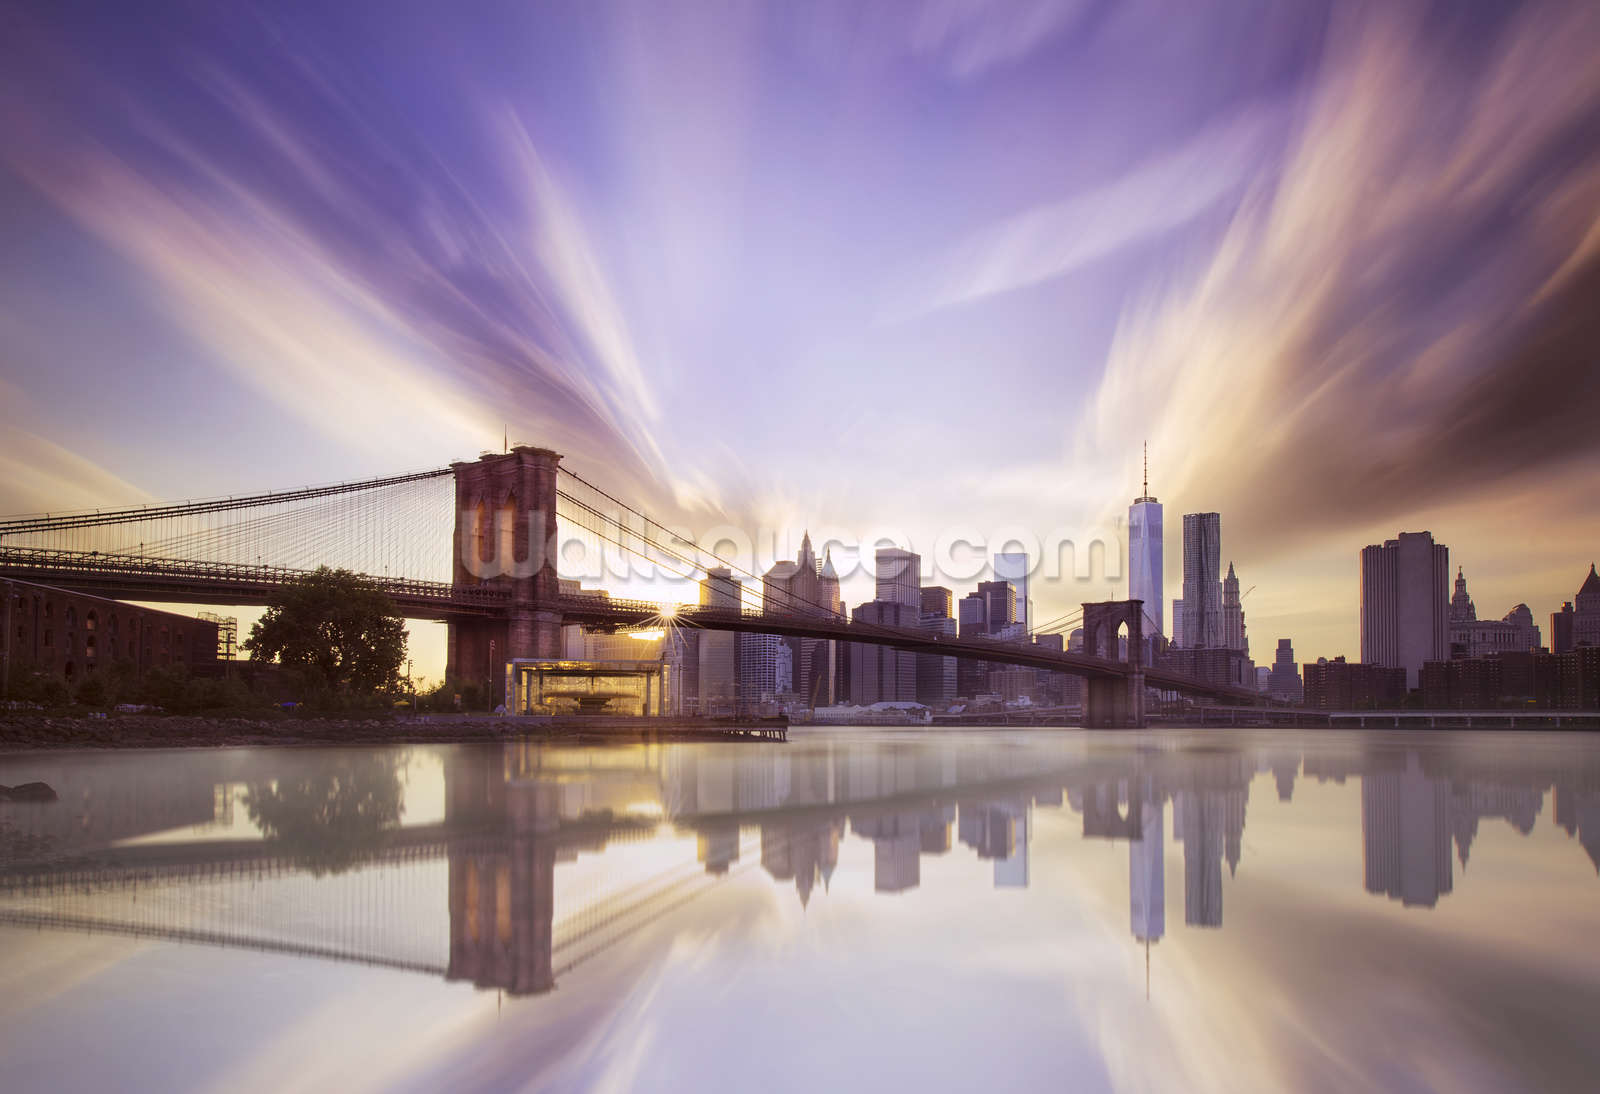 Brooklyn Bridge Sunset Wallpaper Mural Wallsauce UK